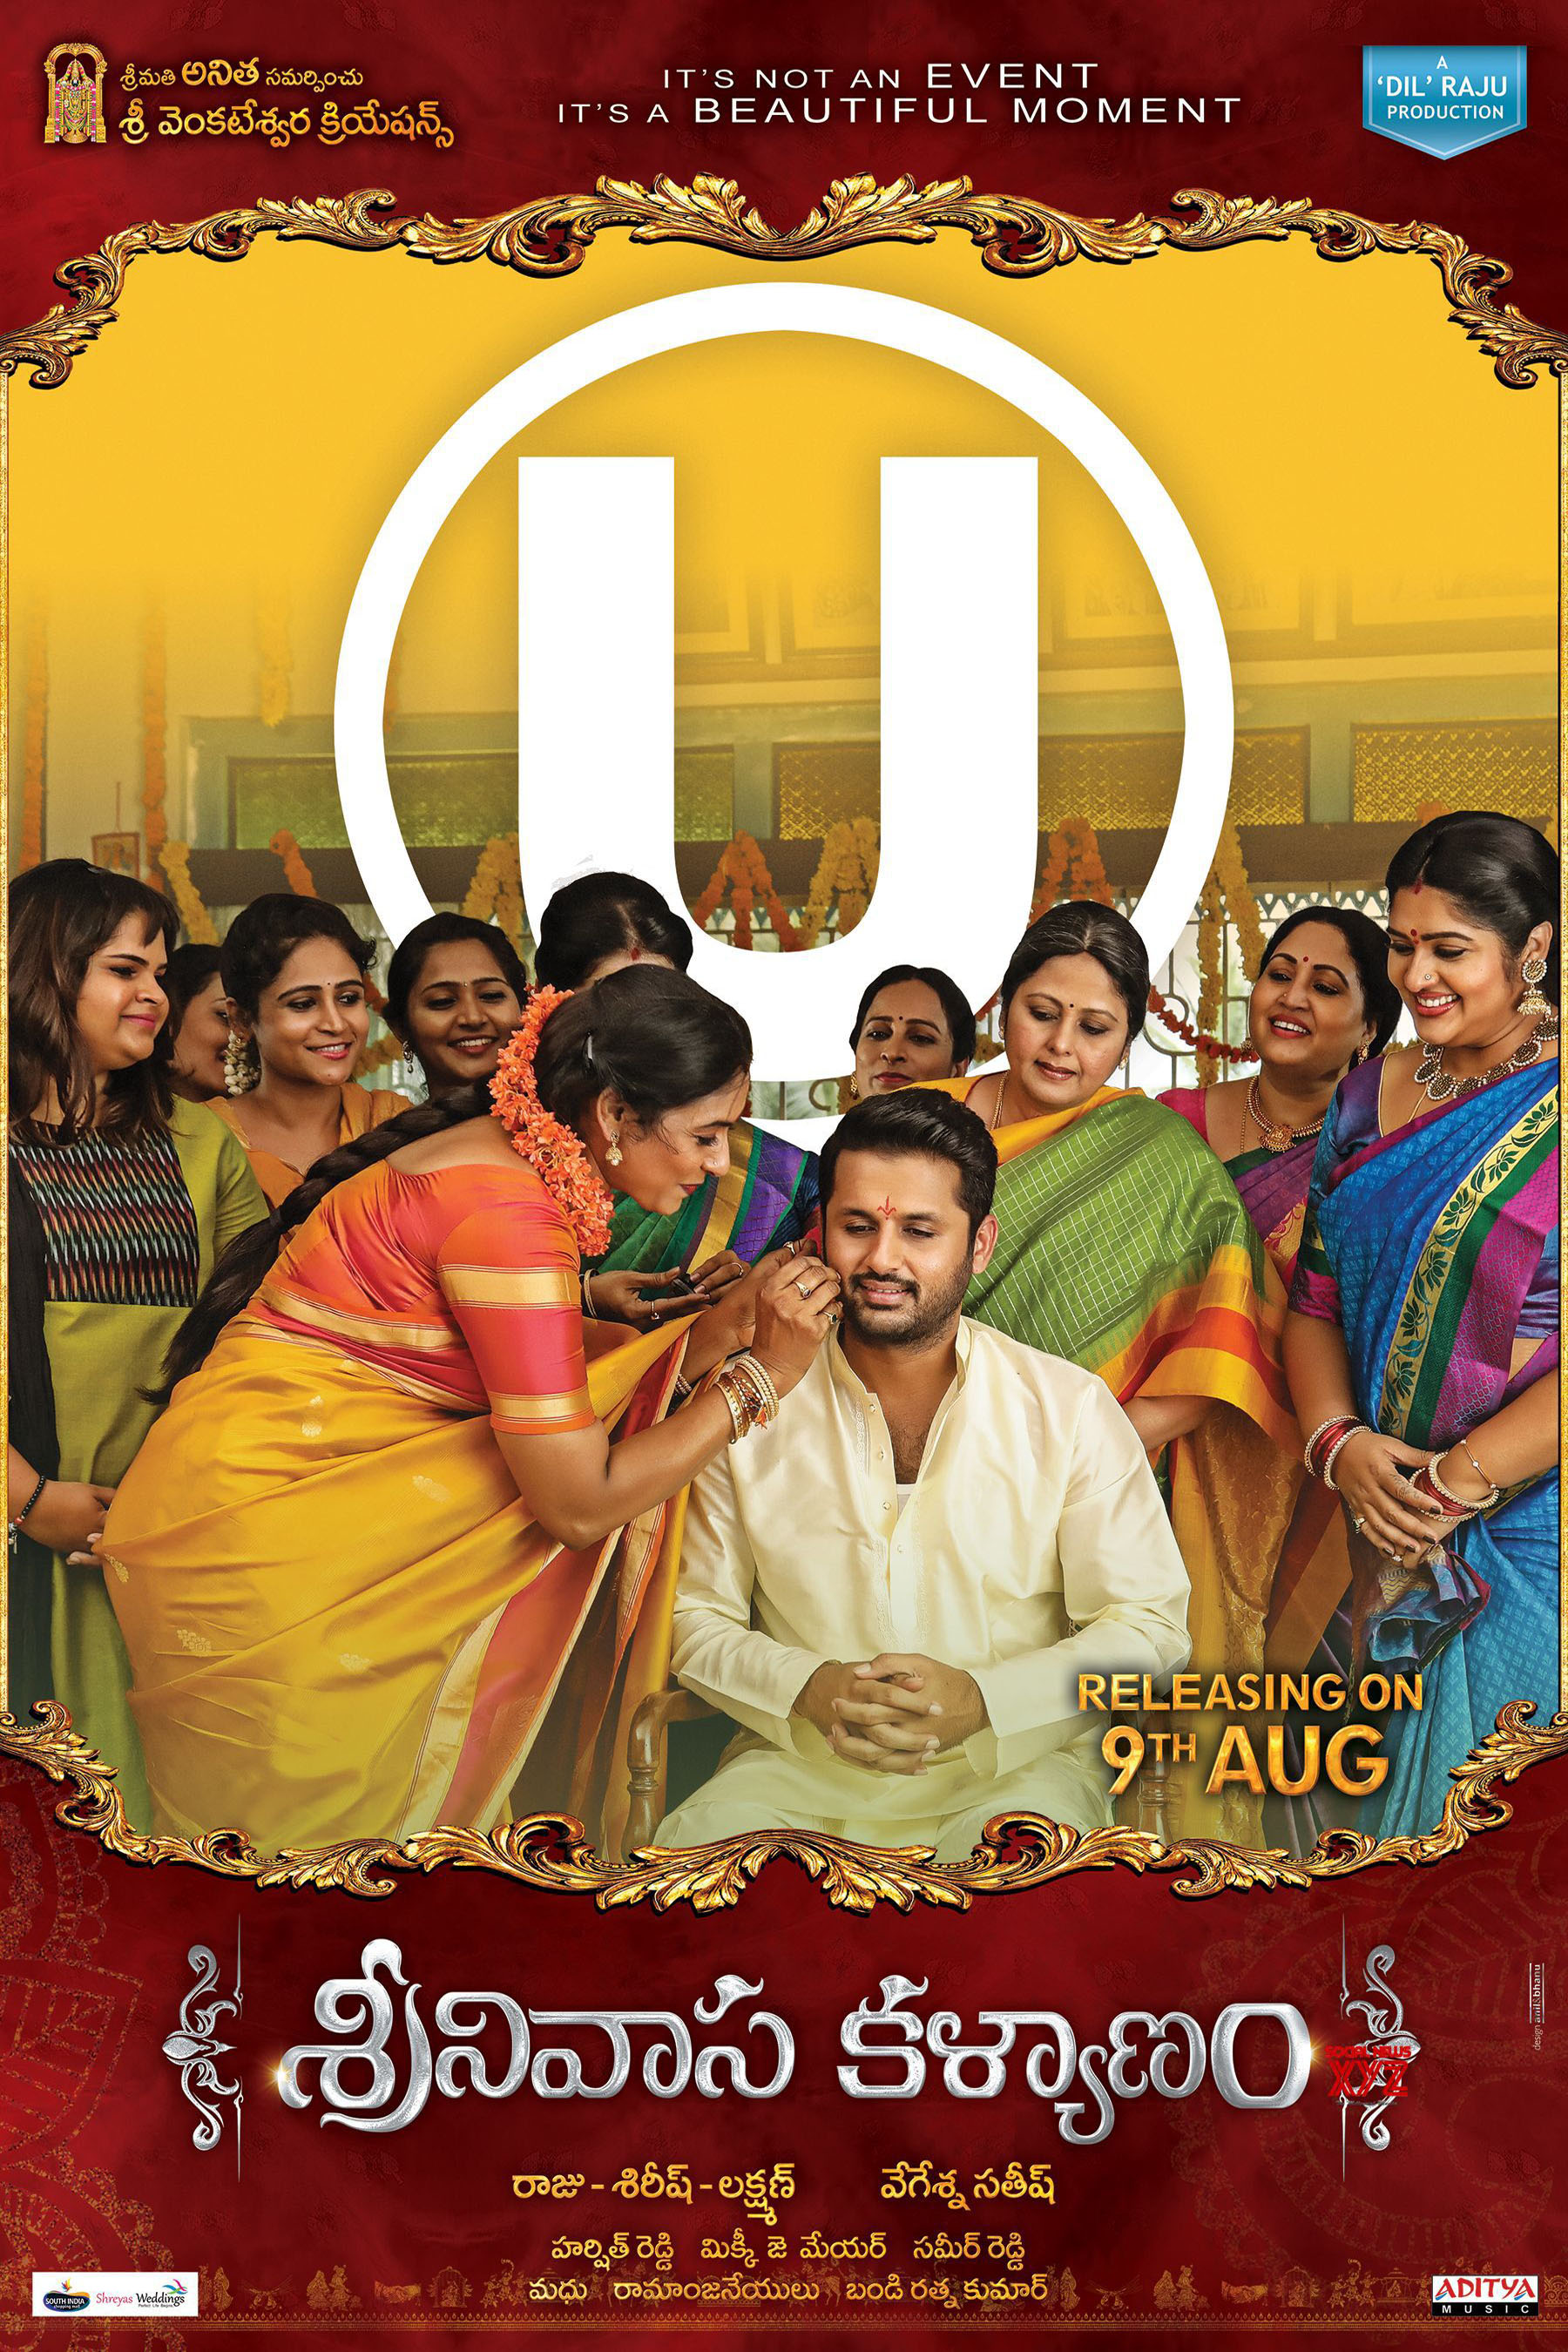 Poster for Srinivasa Kalyanam